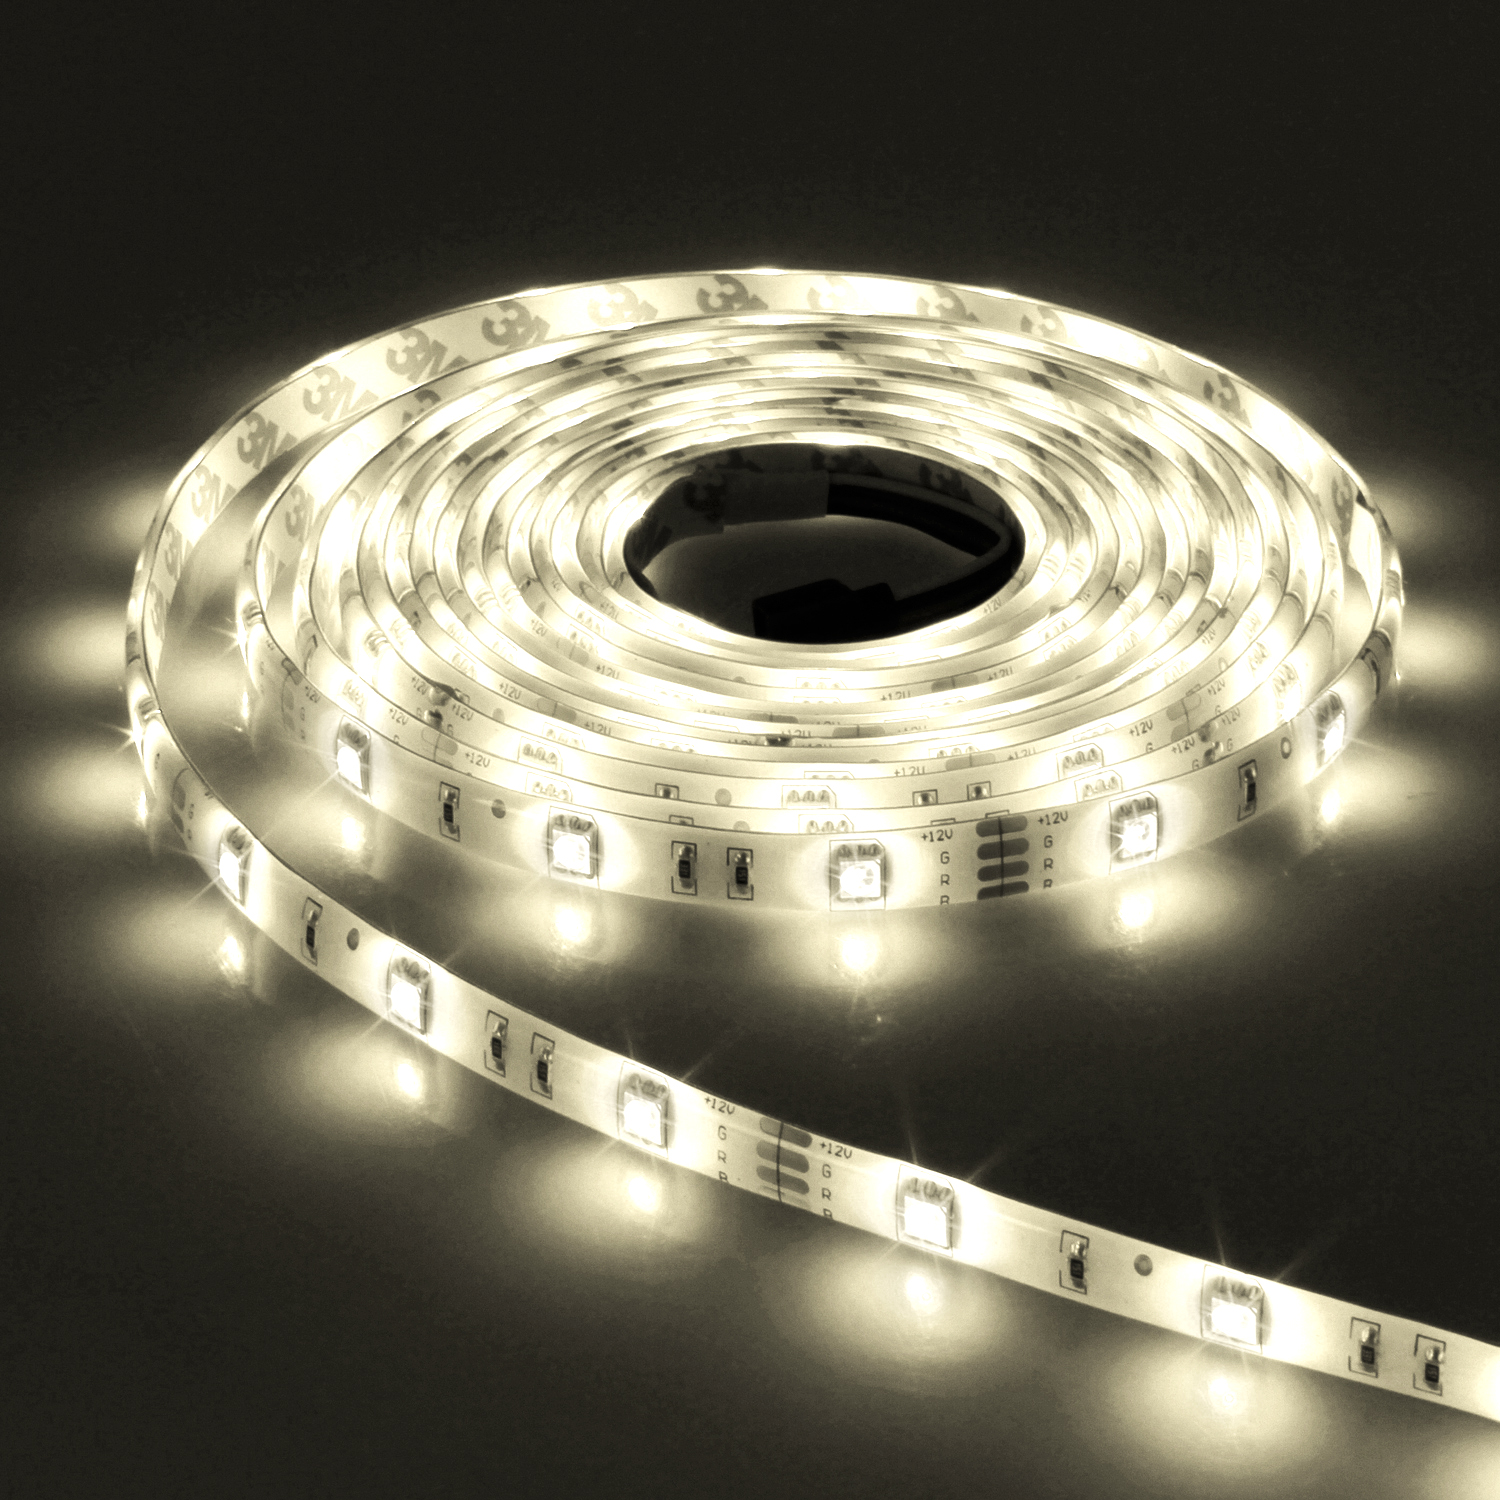 ninetec chill30 5m led strip streifen smd band netzteil. Black Bedroom Furniture Sets. Home Design Ideas